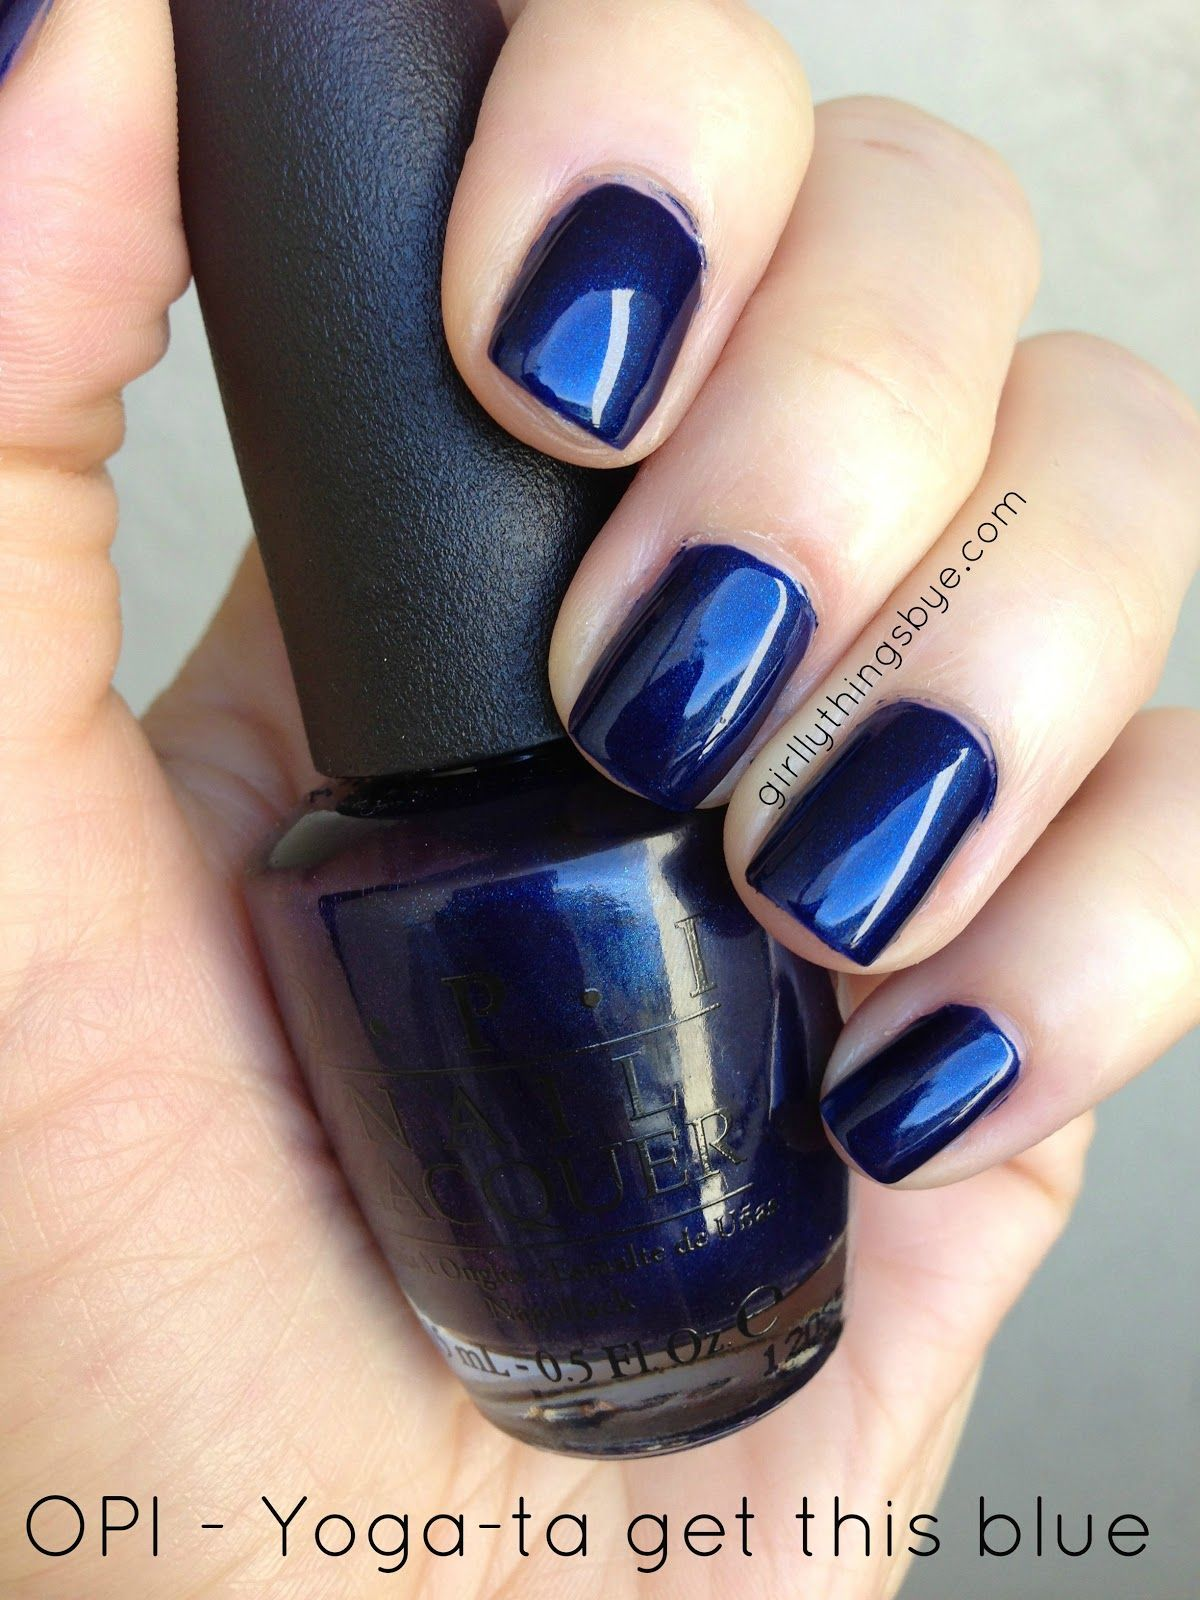 OPI Yoga-ta Get this Blue! from India Collection. I rarely ...